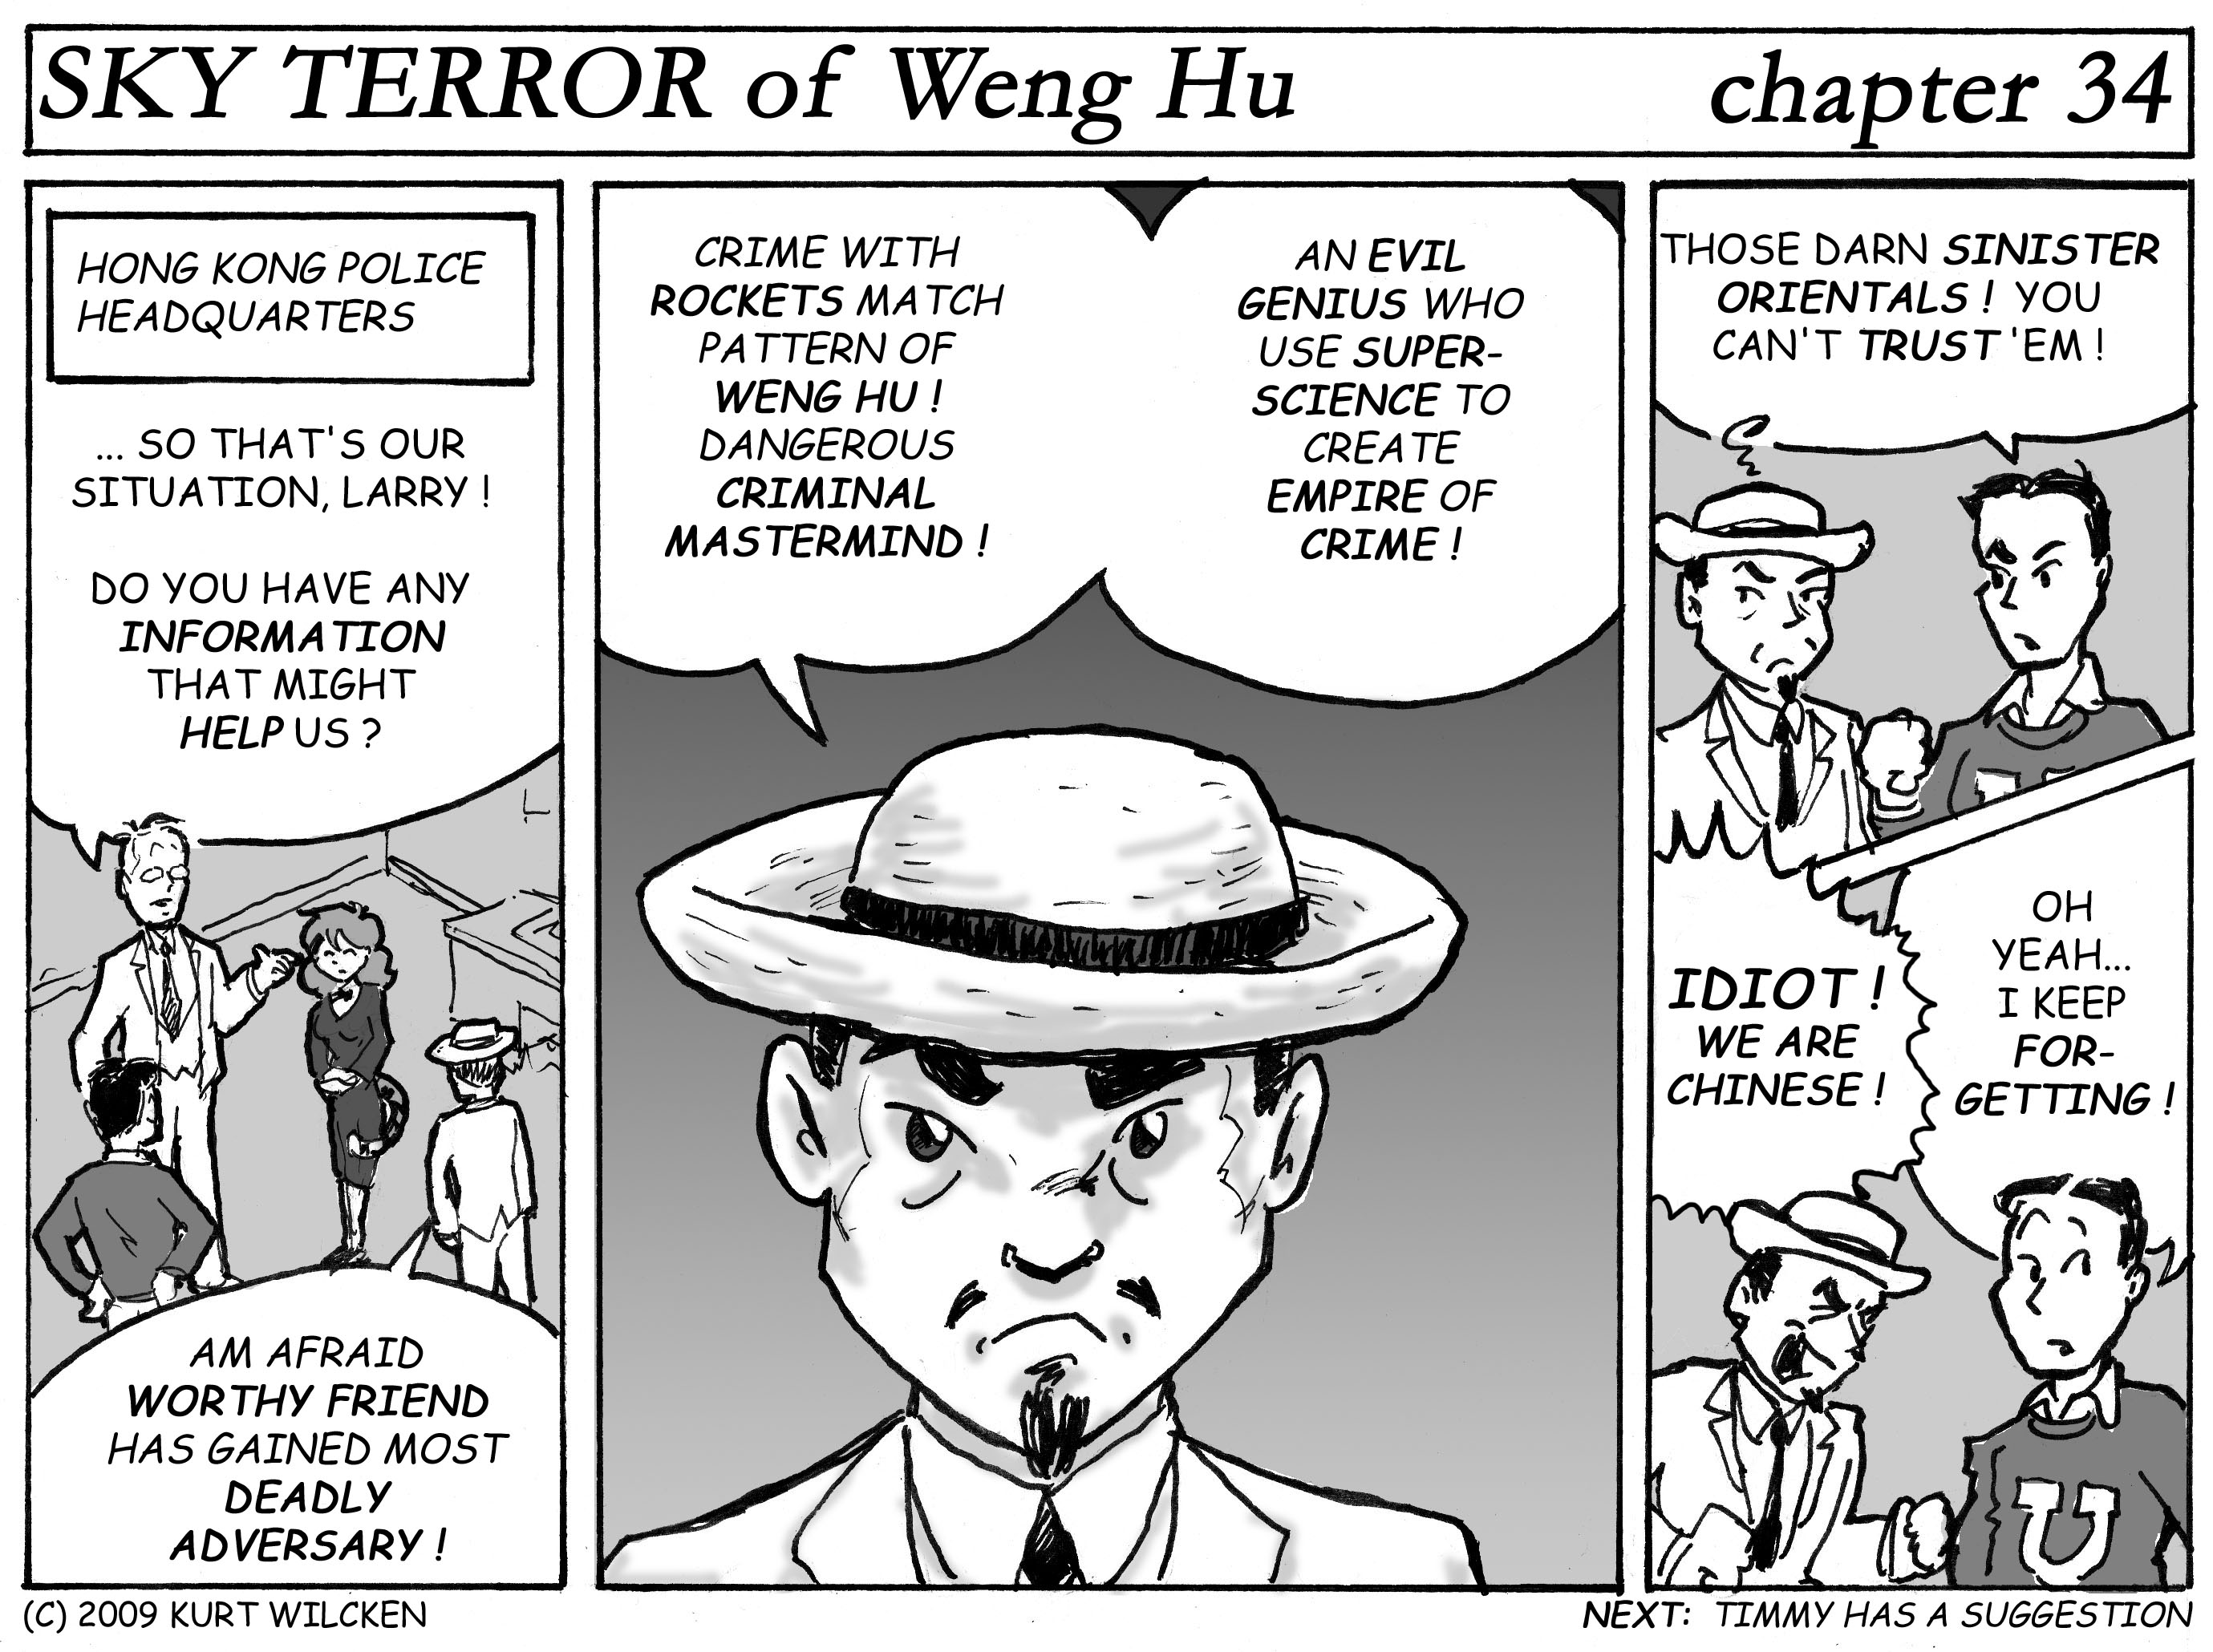 SKY TERROR of Weng Hu:  Chapter 34 — A Deadly Adversary